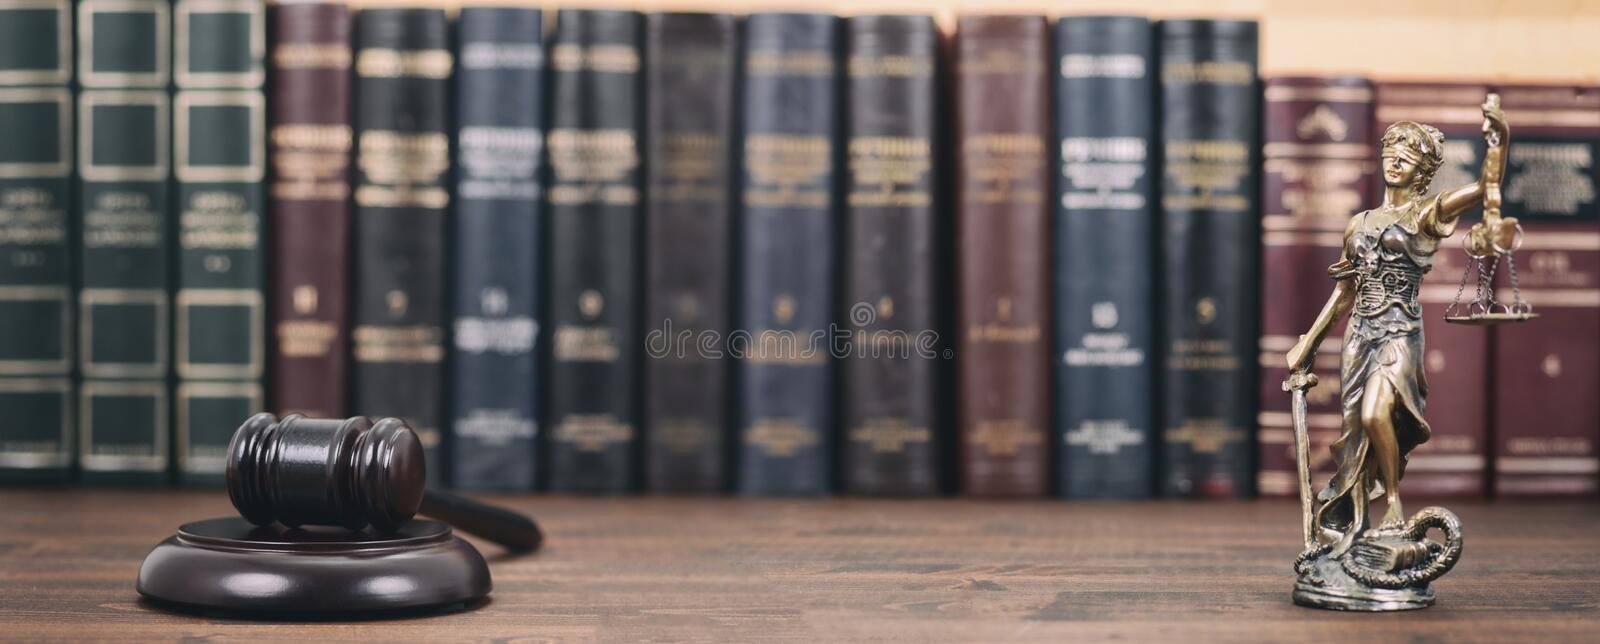 Lady Justice, Scales of Justice and Judge Gavel on a  wooden background stock photography